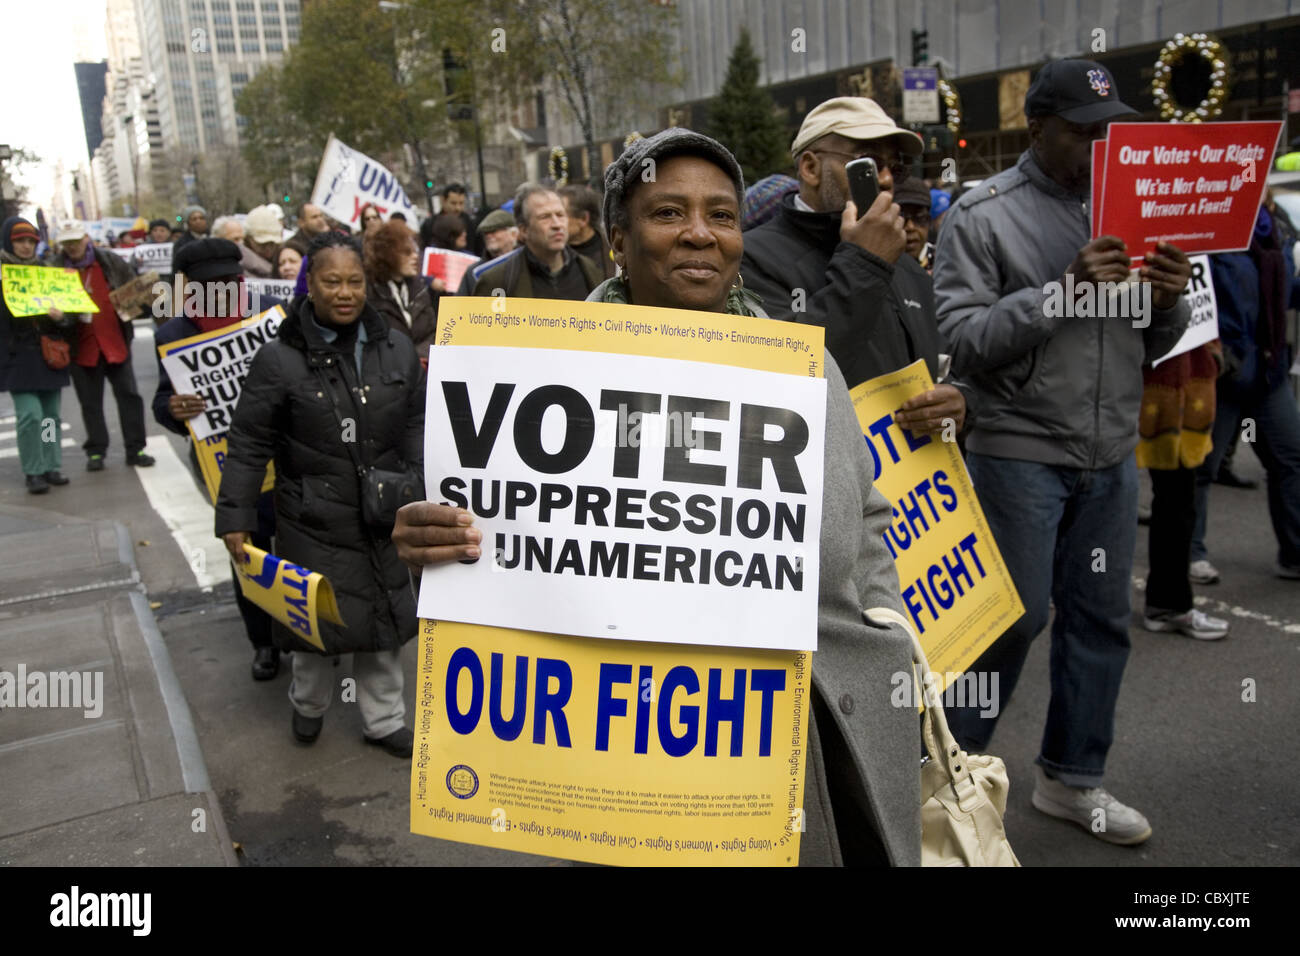 Union members and others march in NYC against payed political influence peddling in many states curtailing voters - Stock Image